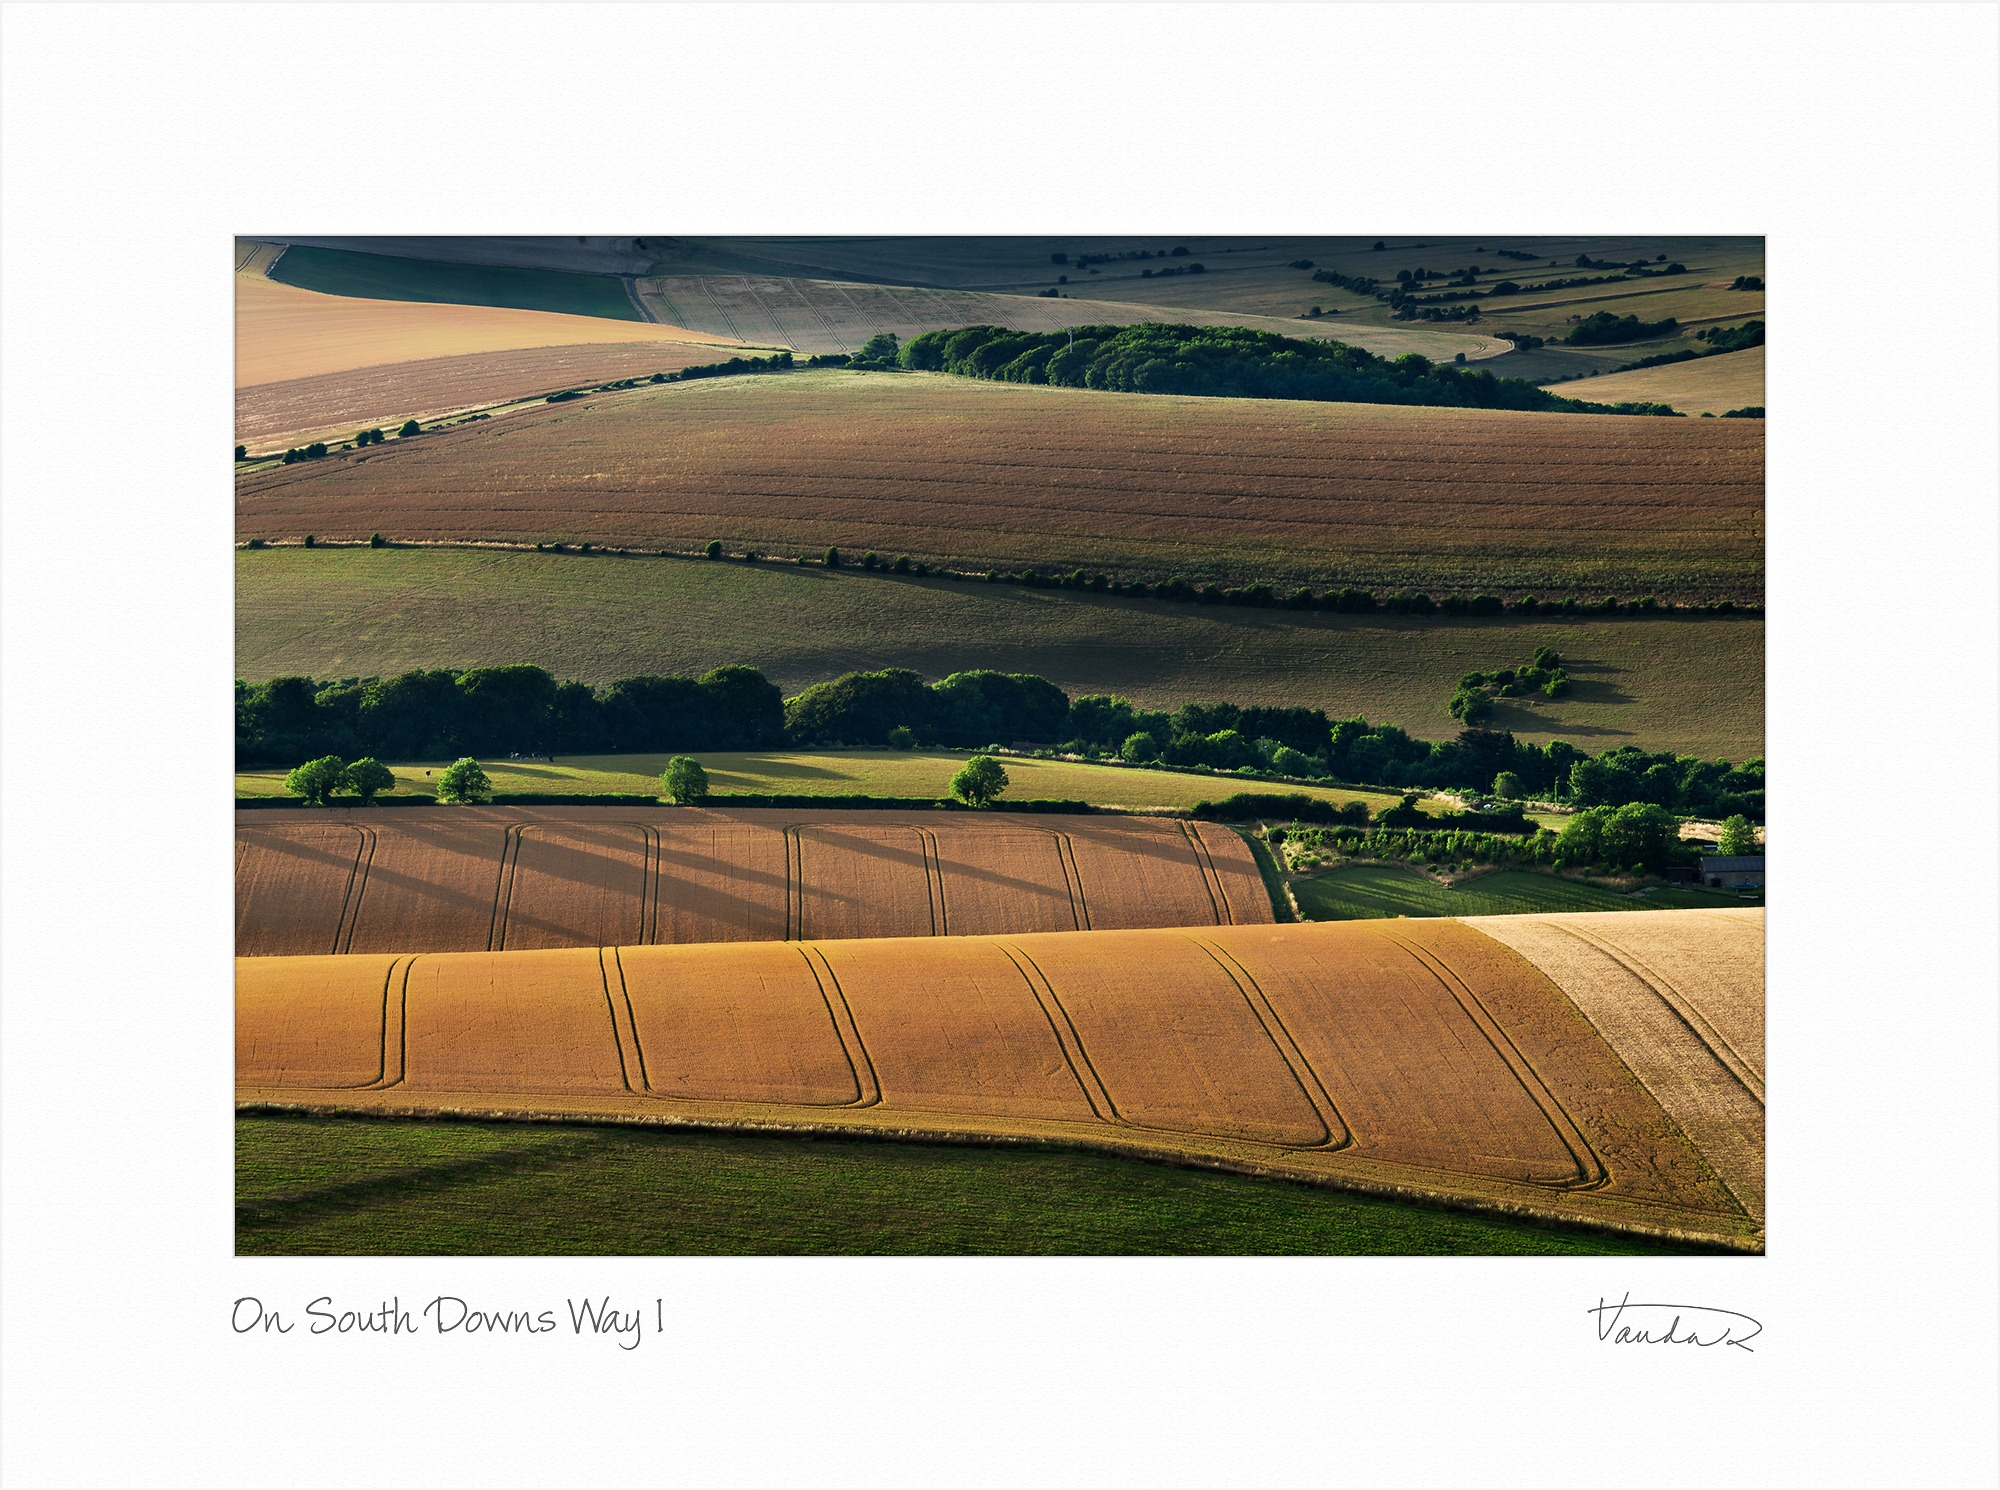 On Southdowns Way I